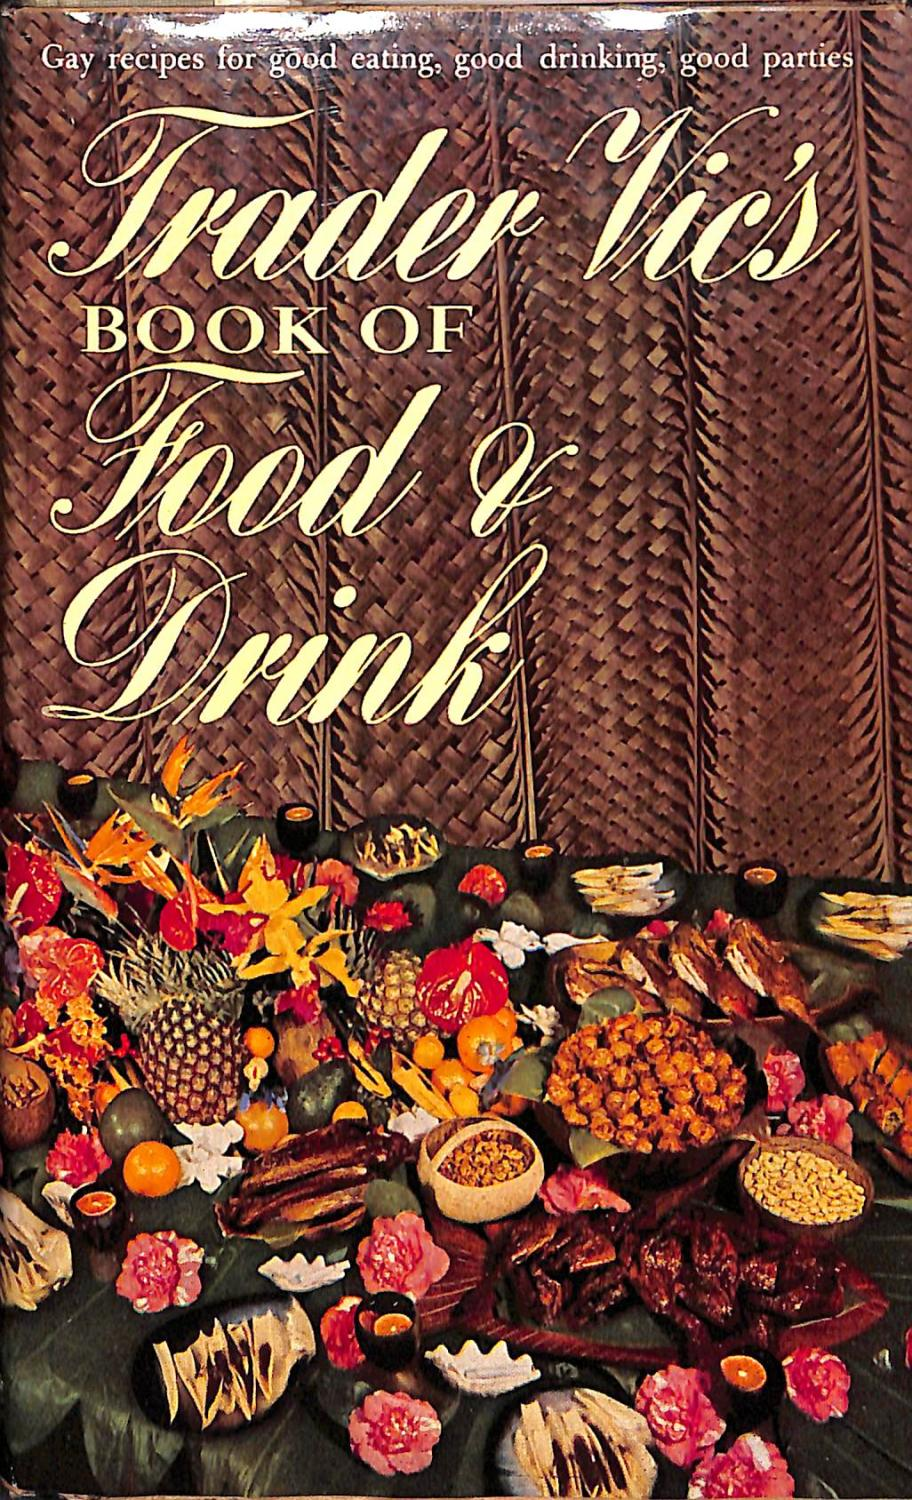 Trader Vic's Book of Food and Drink Trader Vic A cocktail book